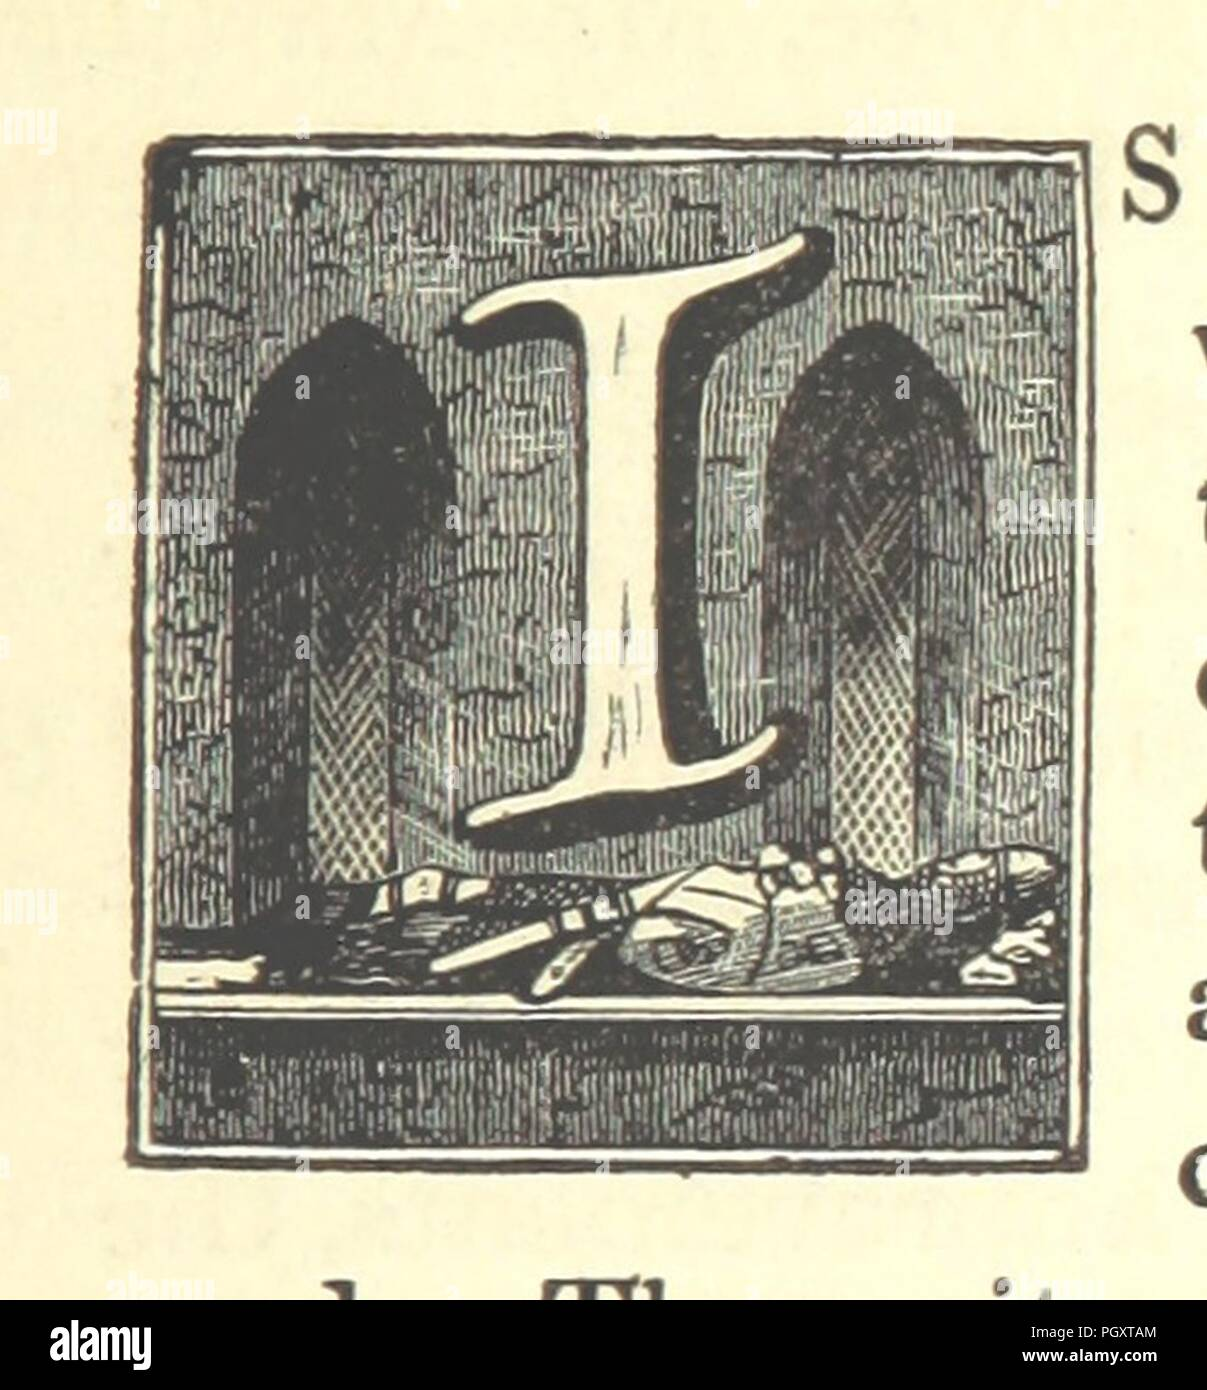 Image  from page 491 of 'The history and topography of the Isle of Axholme, being that part of Lincolnshire which is west of Trent' . - Stock Image